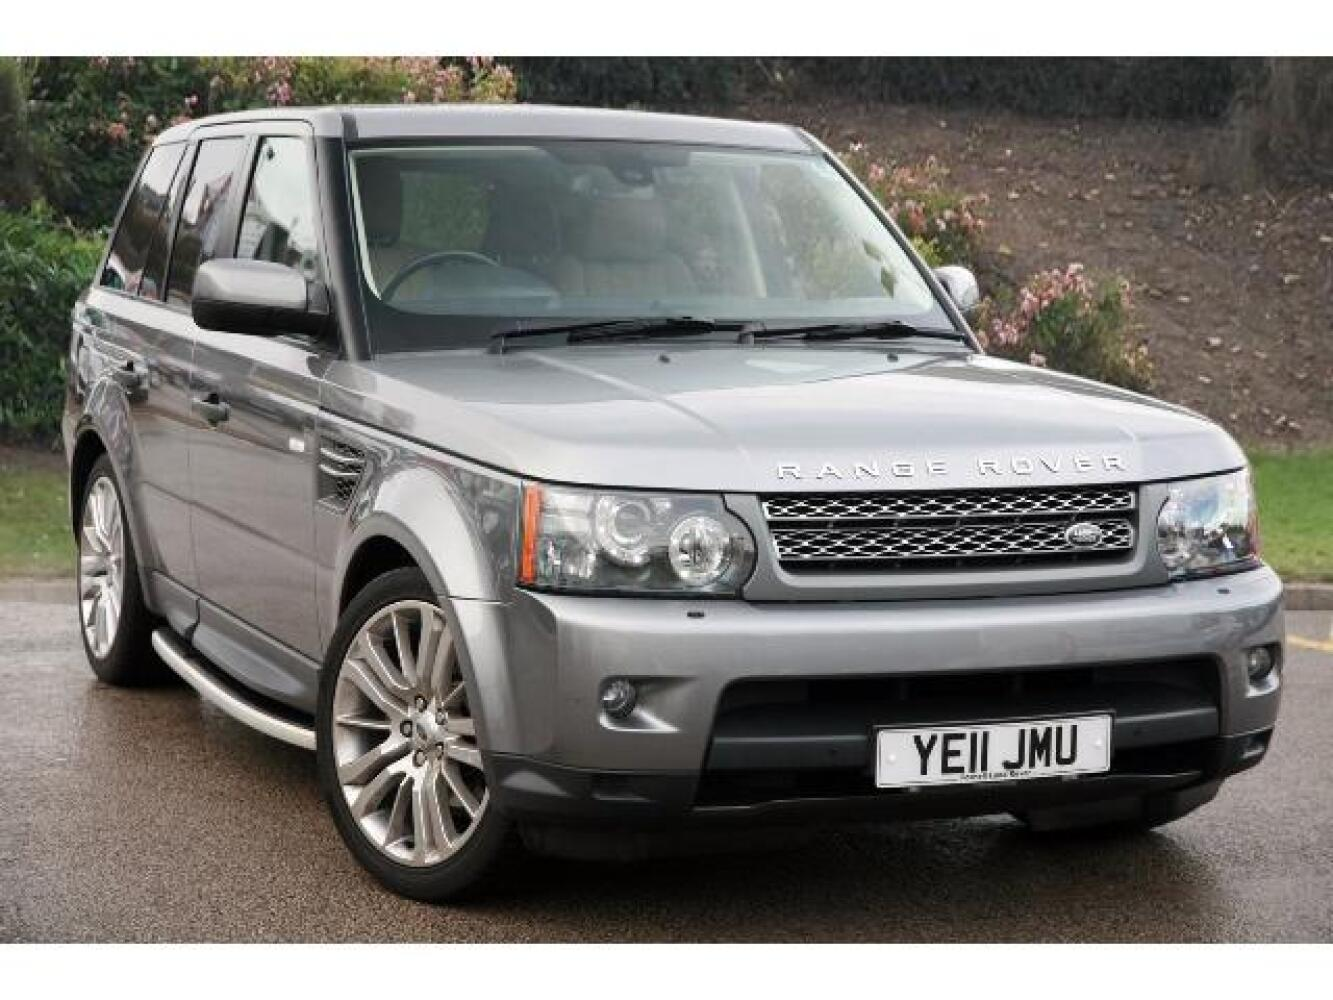 used land rover range rover sport 3 0 tdv6 hse 5dr commandshift diesel estate for sale farnell. Black Bedroom Furniture Sets. Home Design Ideas